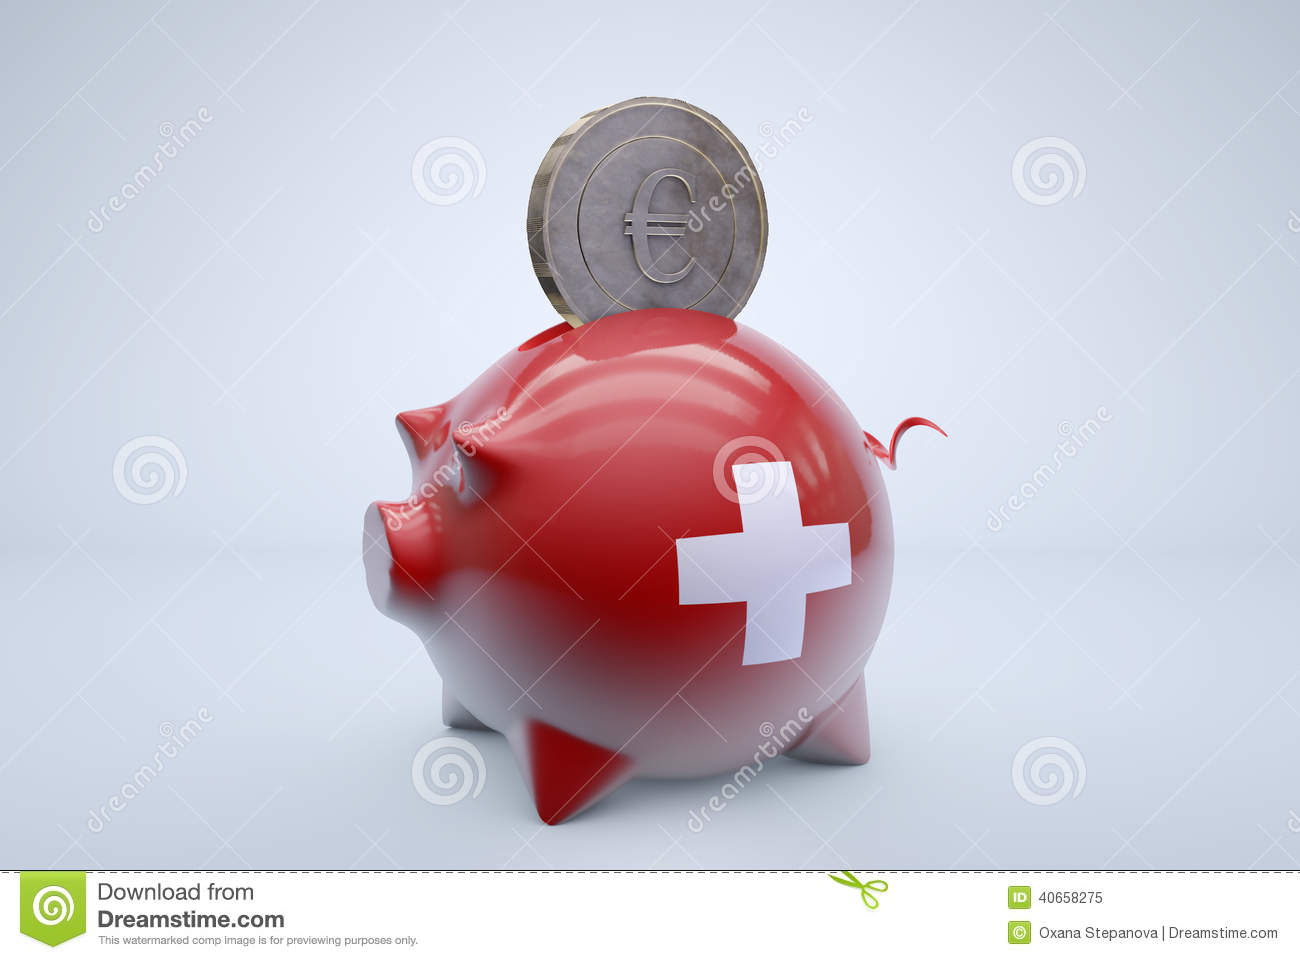 Swiss piggy bank with euro coin stock illustration illustration royalty free stock photo buycottarizona Image collections